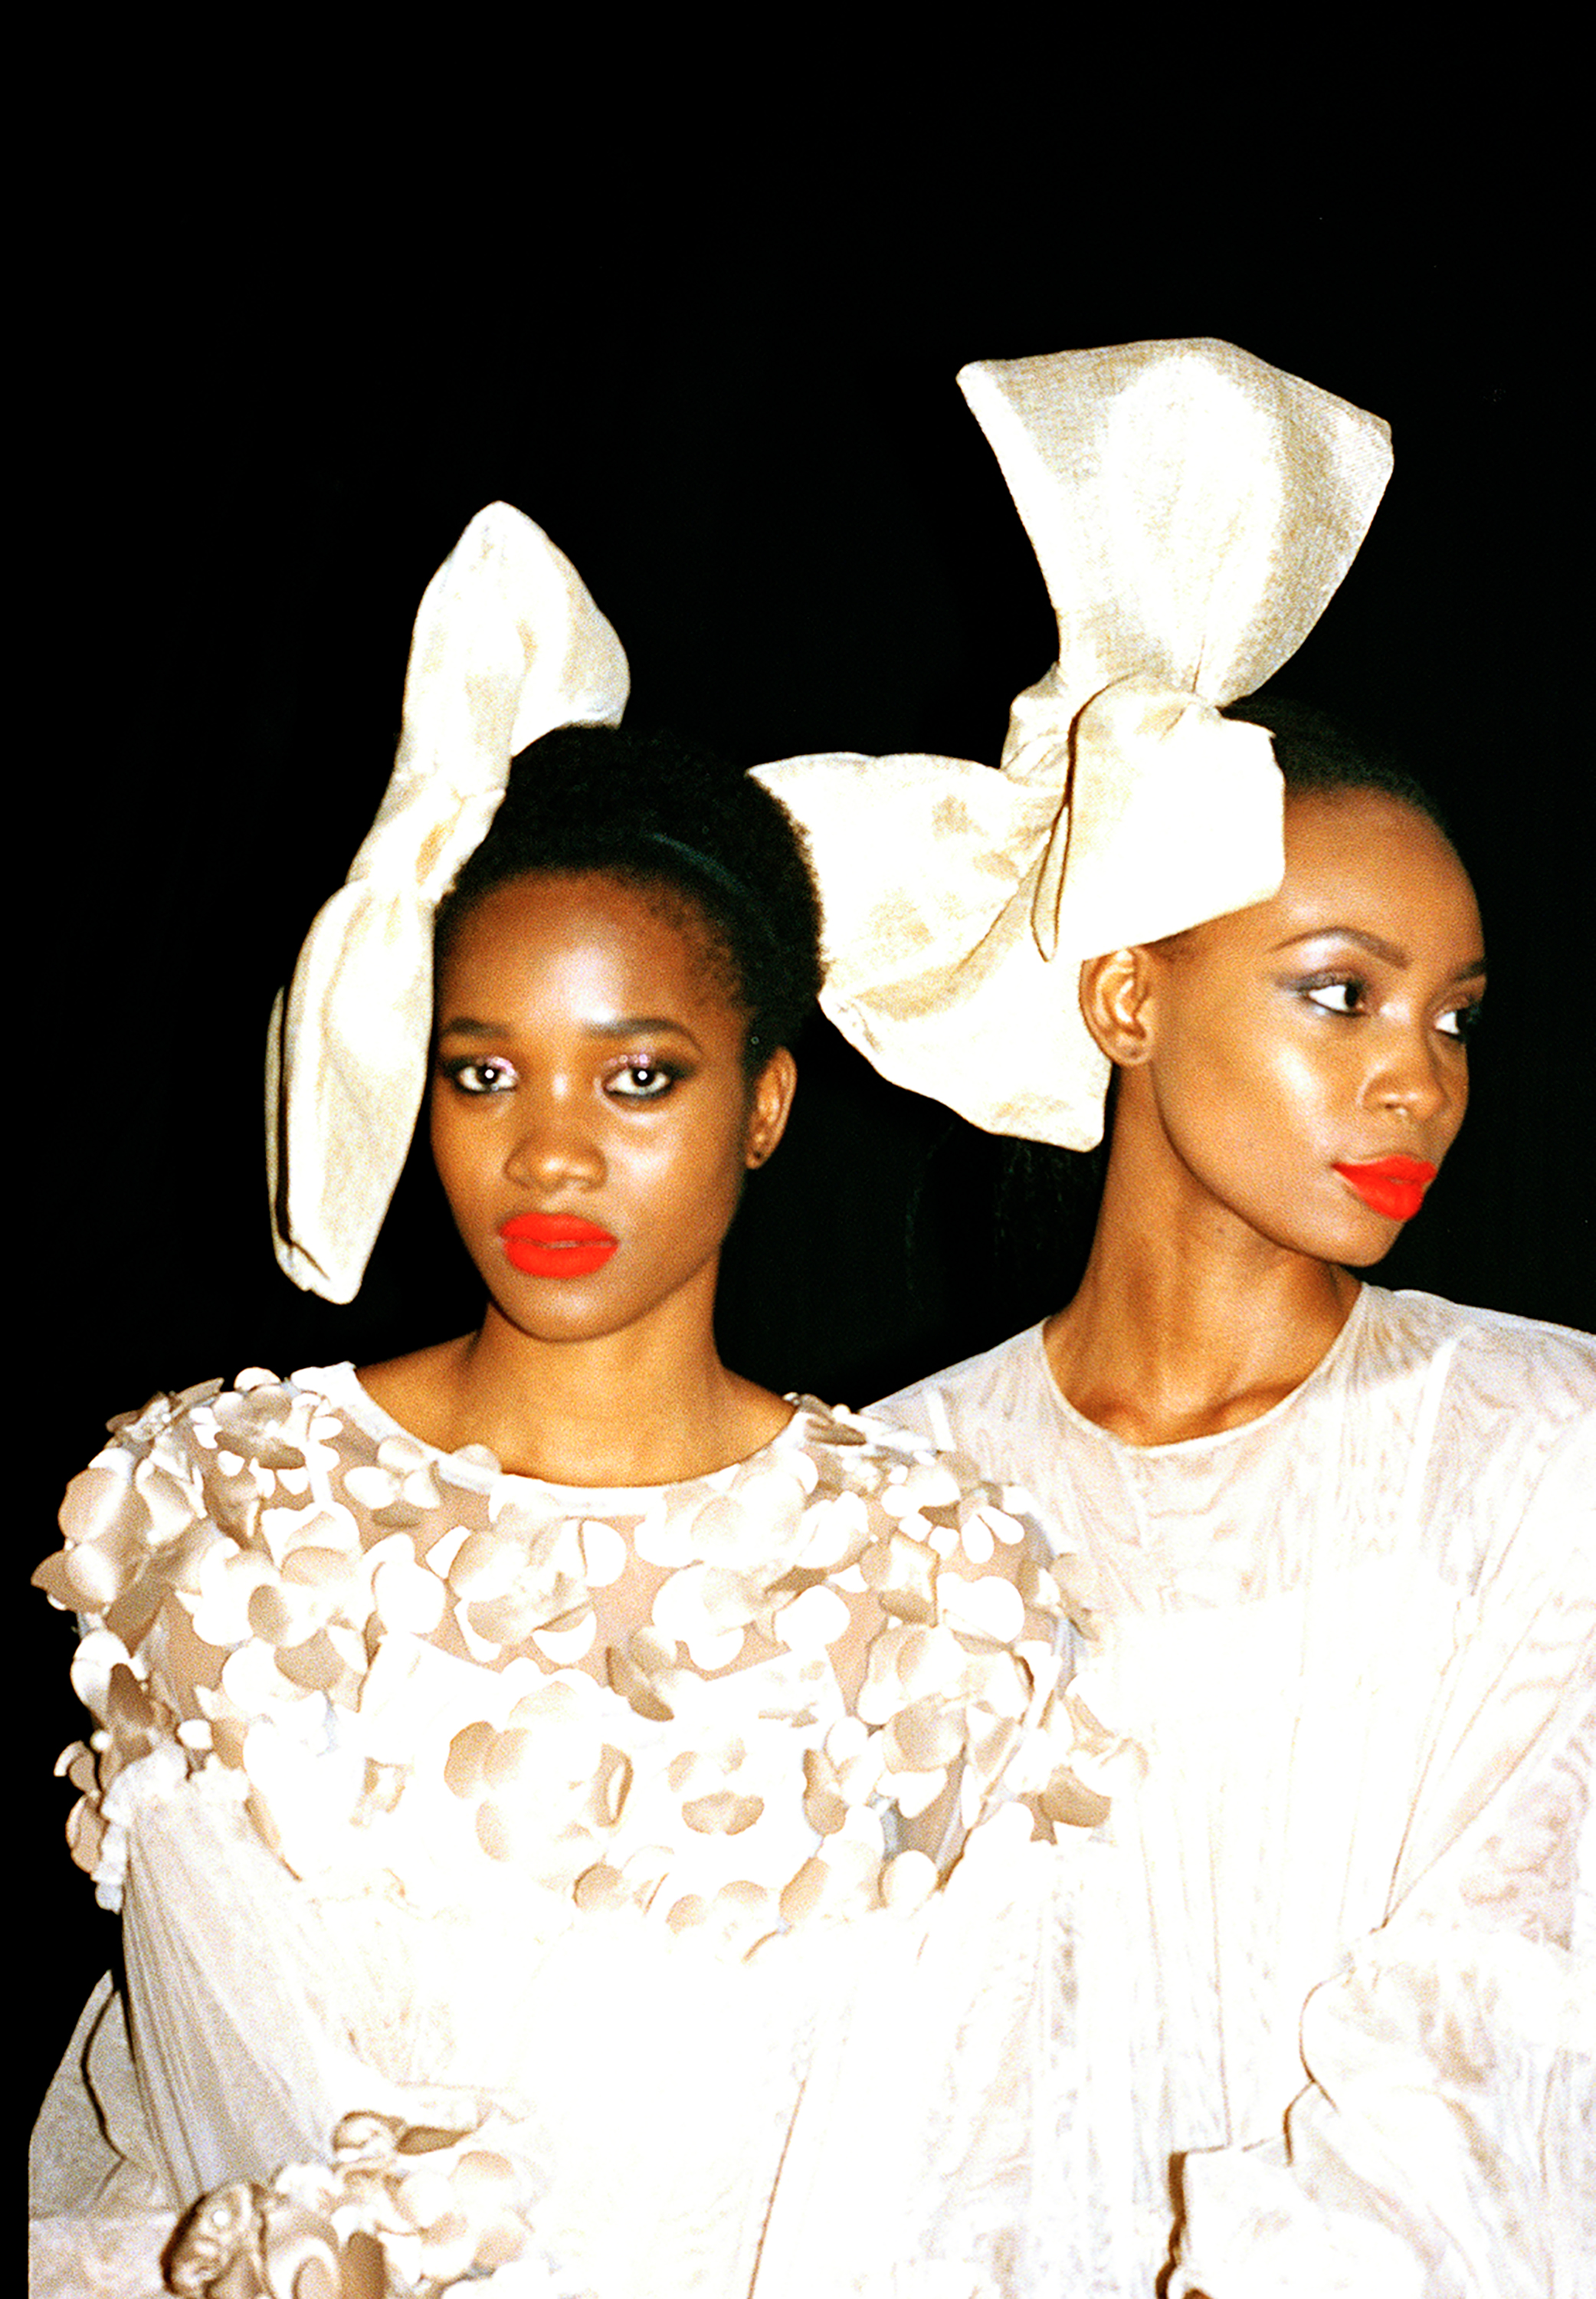 The Nigerian Fashion Industry Is Ready To Take Over I D